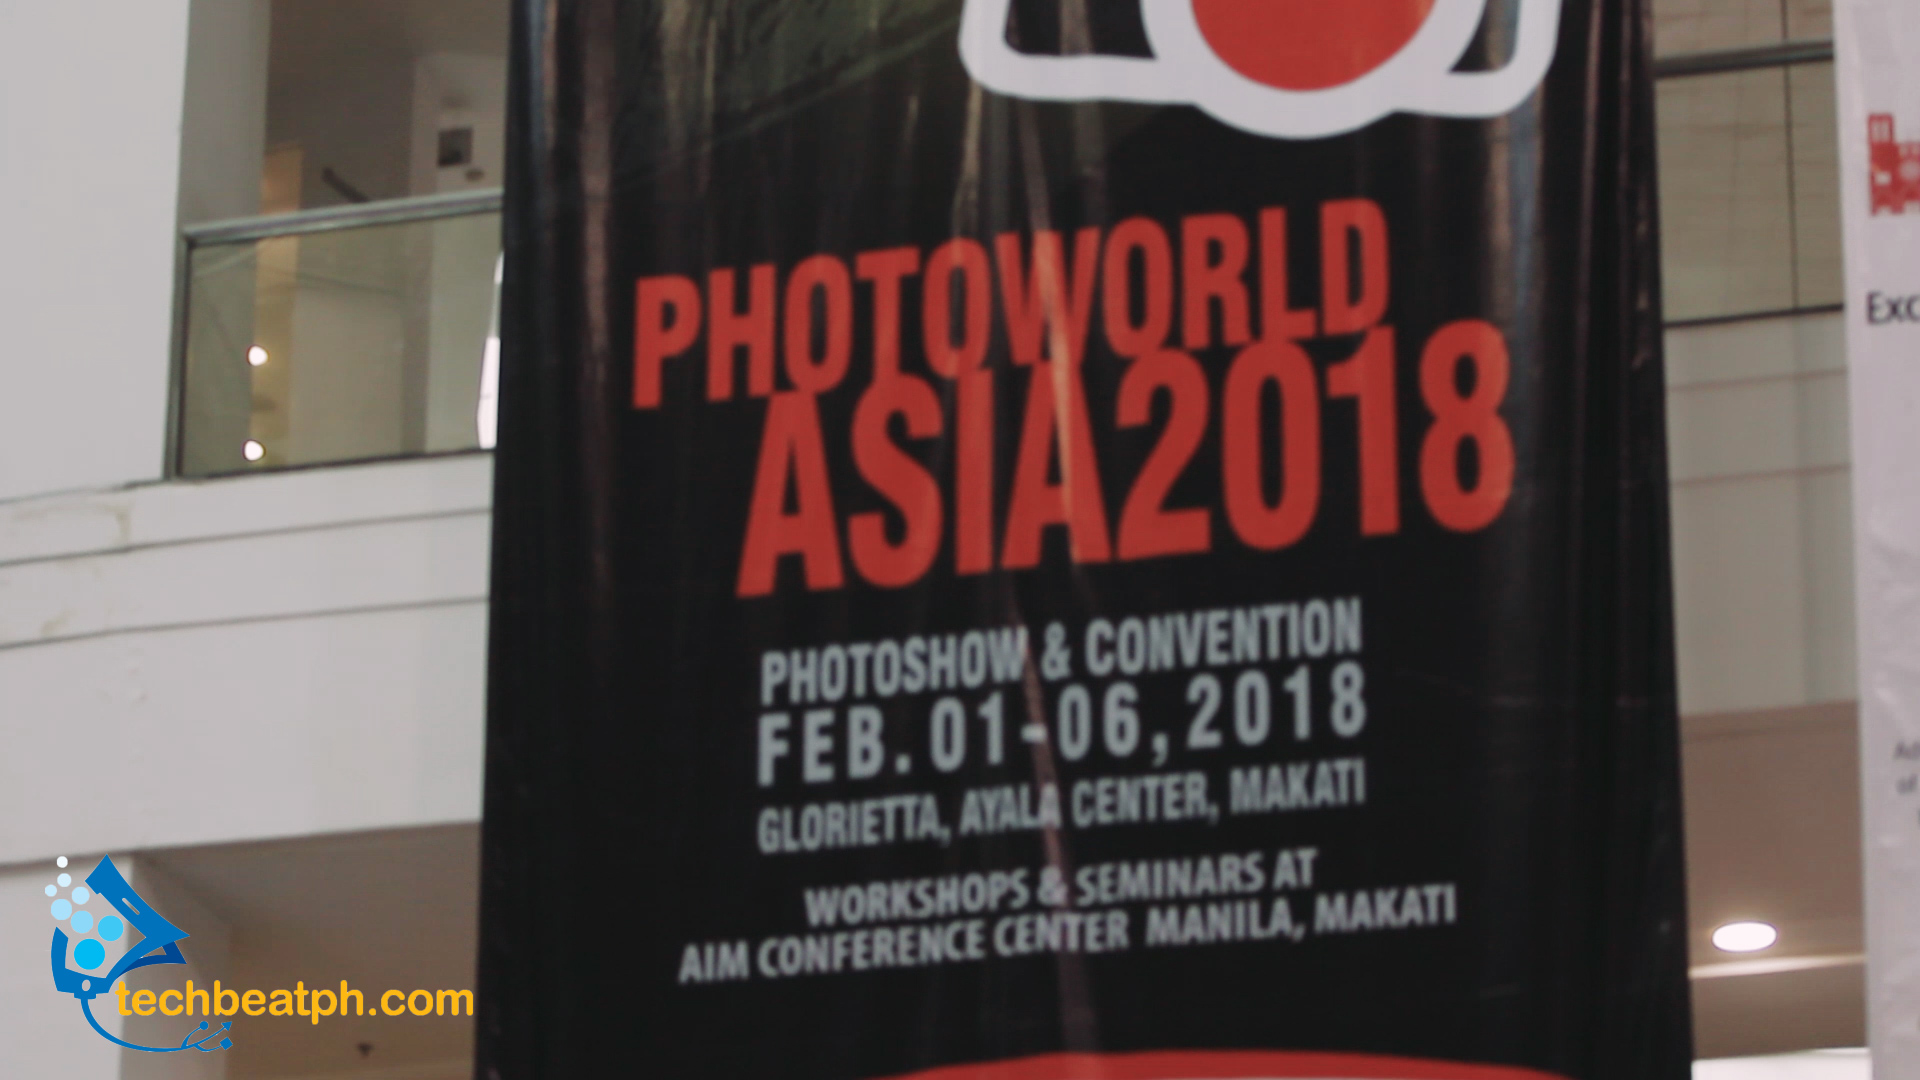 PhotoWorld Asia 2018 this Year biggest photo event